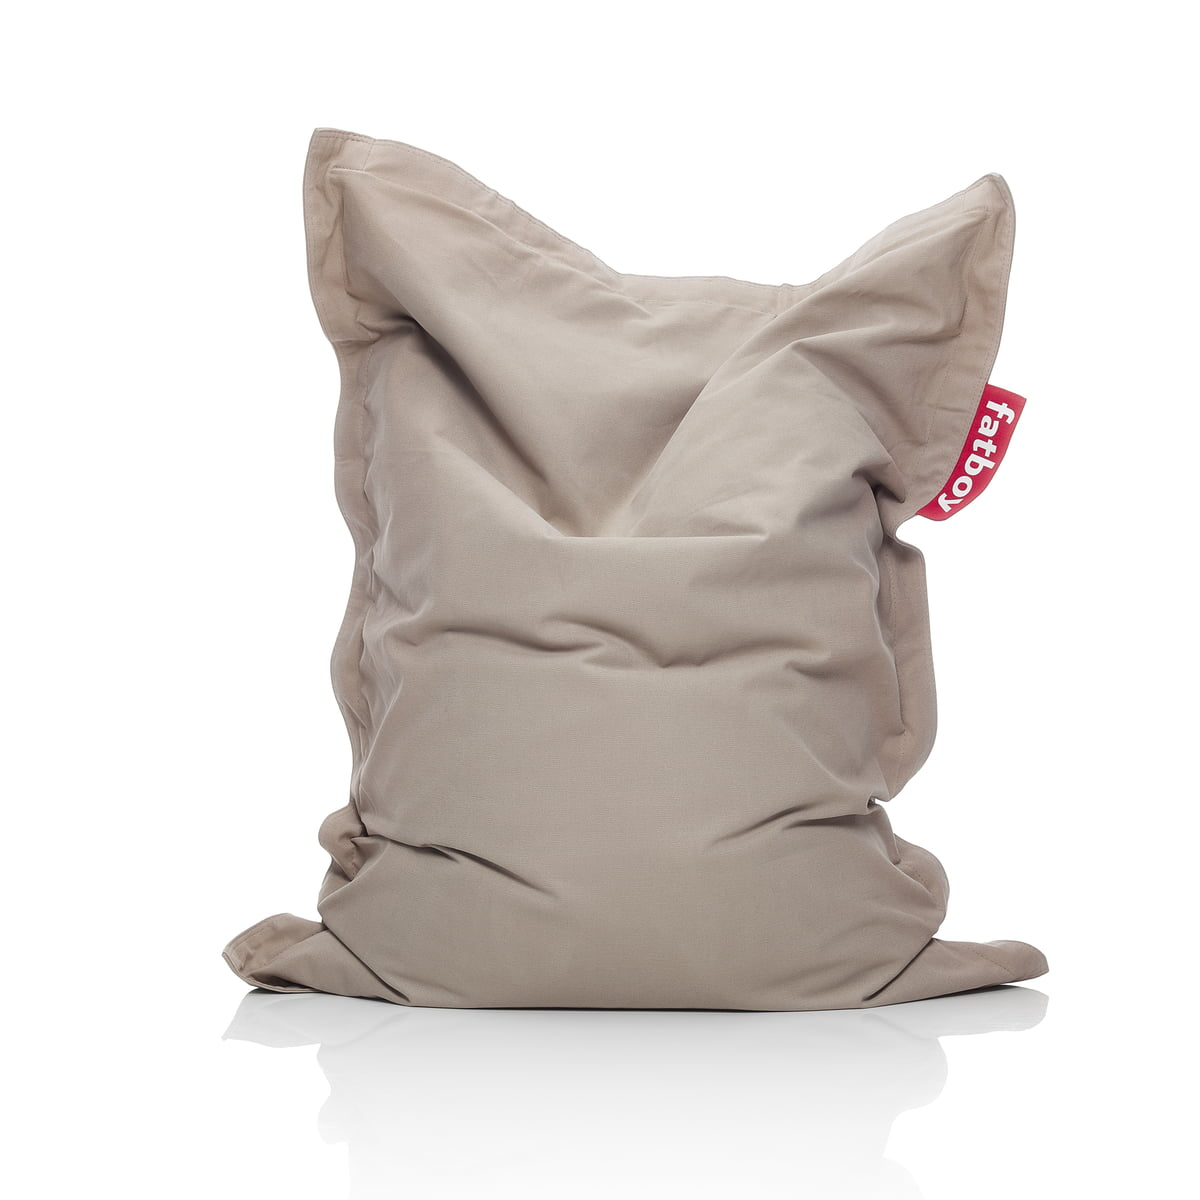 the junior beanbag stonewashed by fatboy - fatboy  junior stonewashed beanbag sand